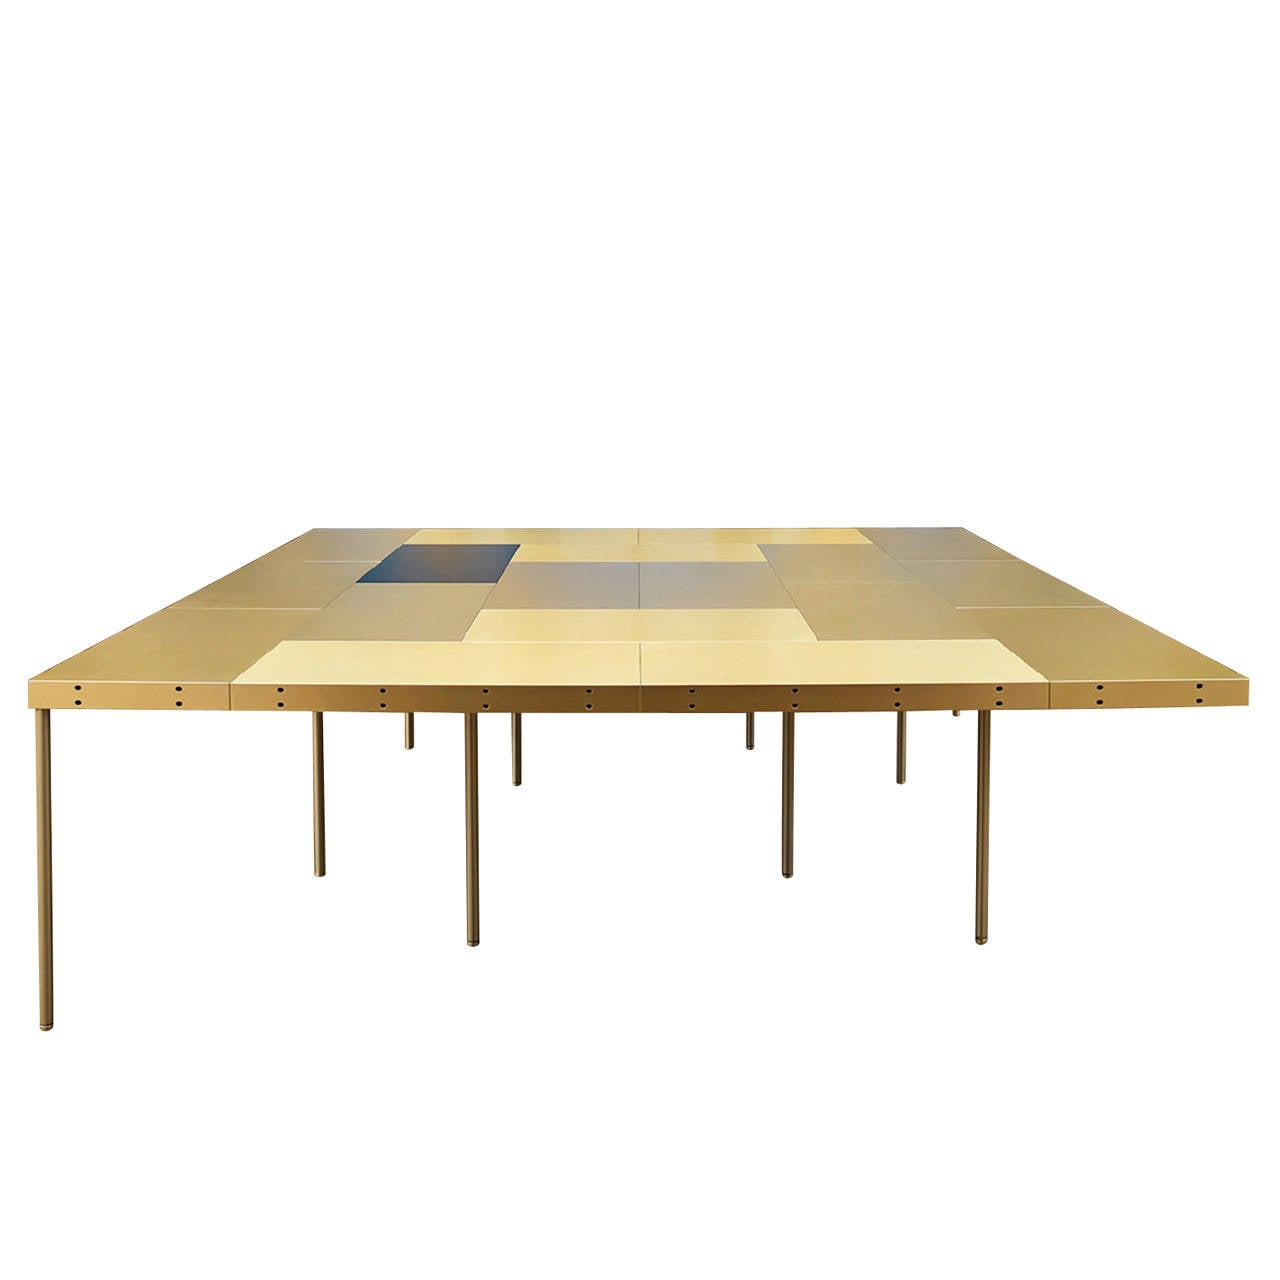 Map outsize table 3 mixed 18 modules with opening by for Table 00 martin szekely